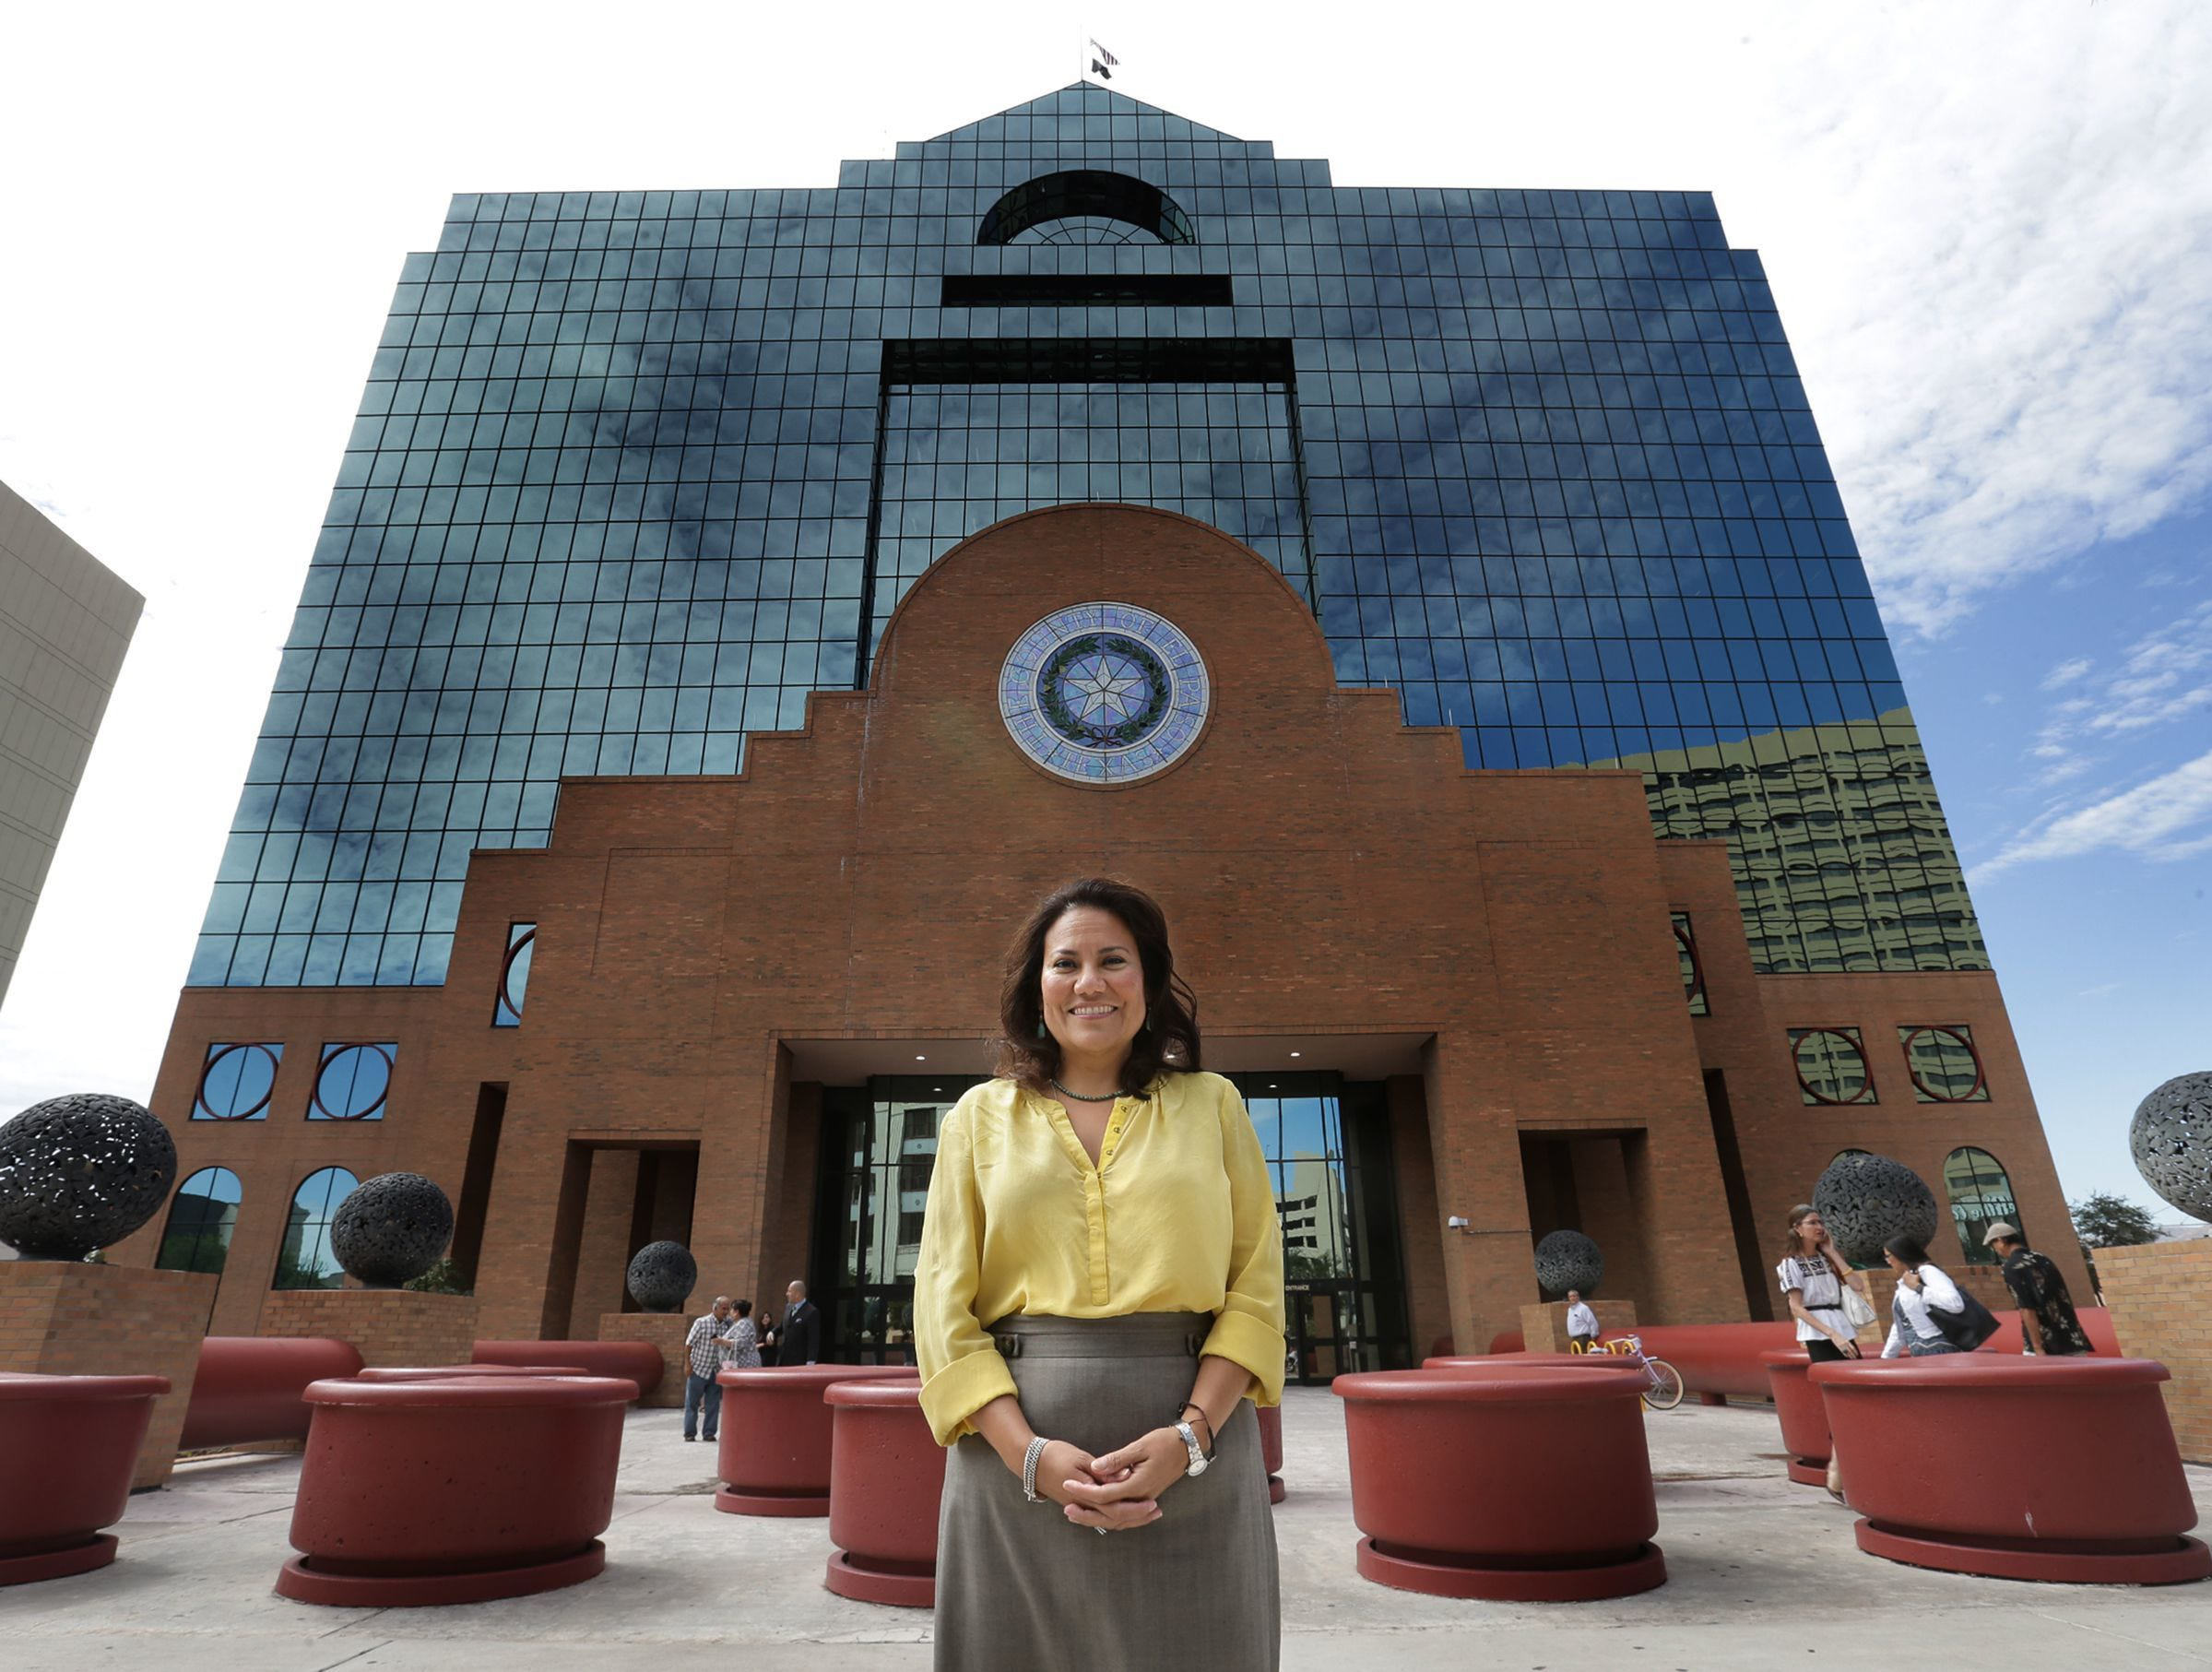 El Paso County Judge Veronica Escobar announced Friday she is resigning to run for the congressional seat being vacated by U.S. Rep. Beto O'Rourke, D-El Paso.